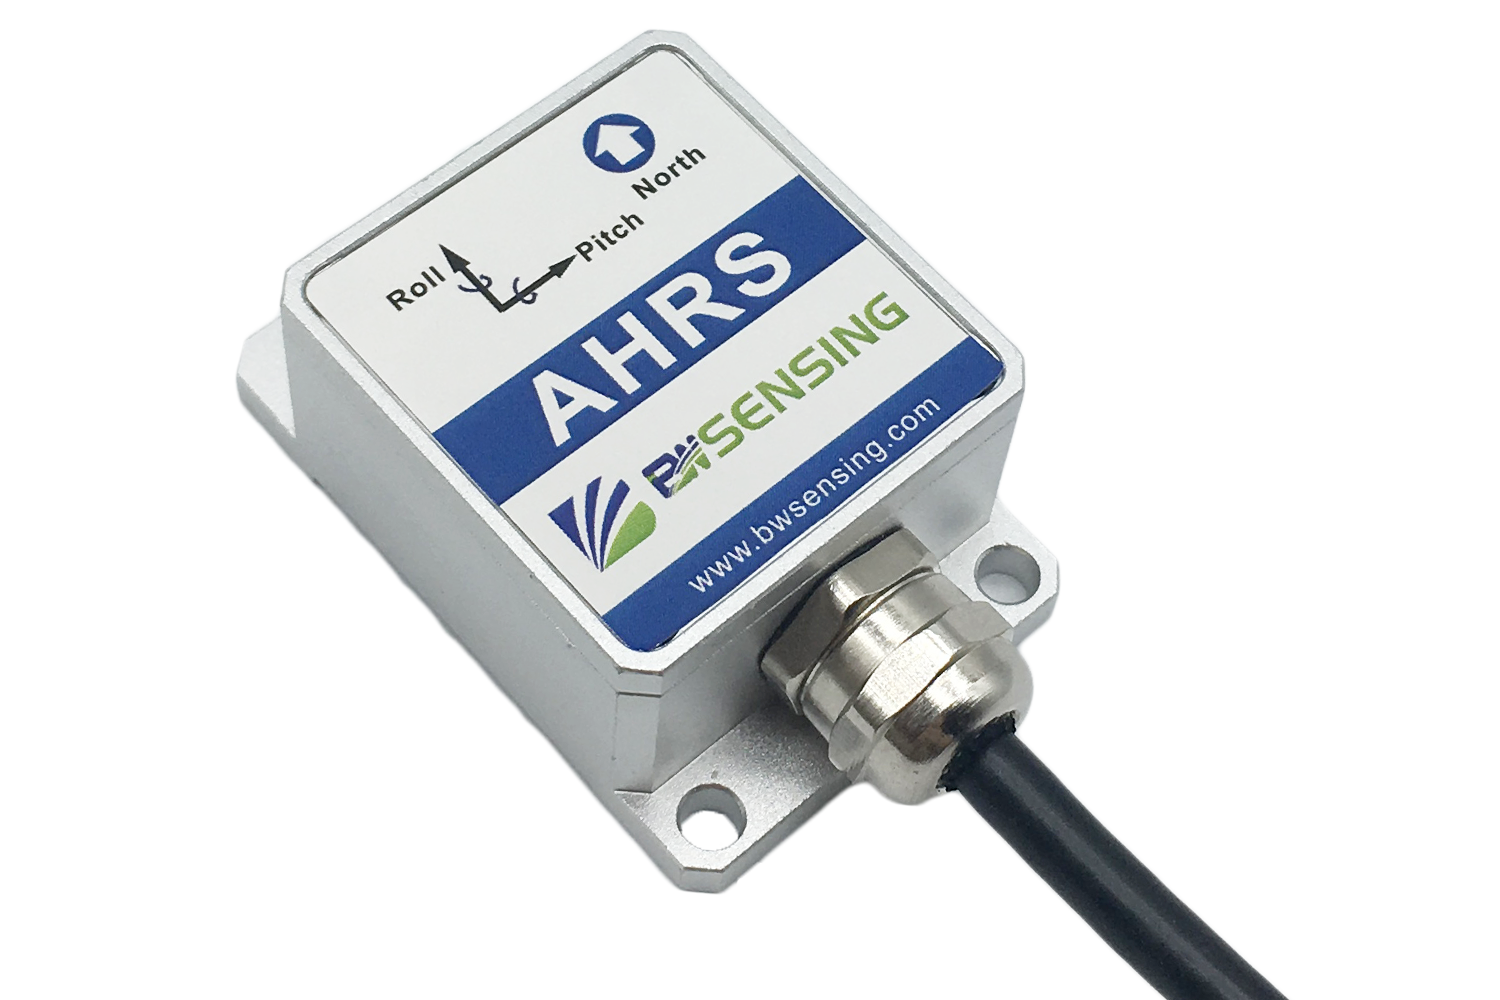 BWSENSING Low cost CAN bus Attitude and Heading Reference System AH125